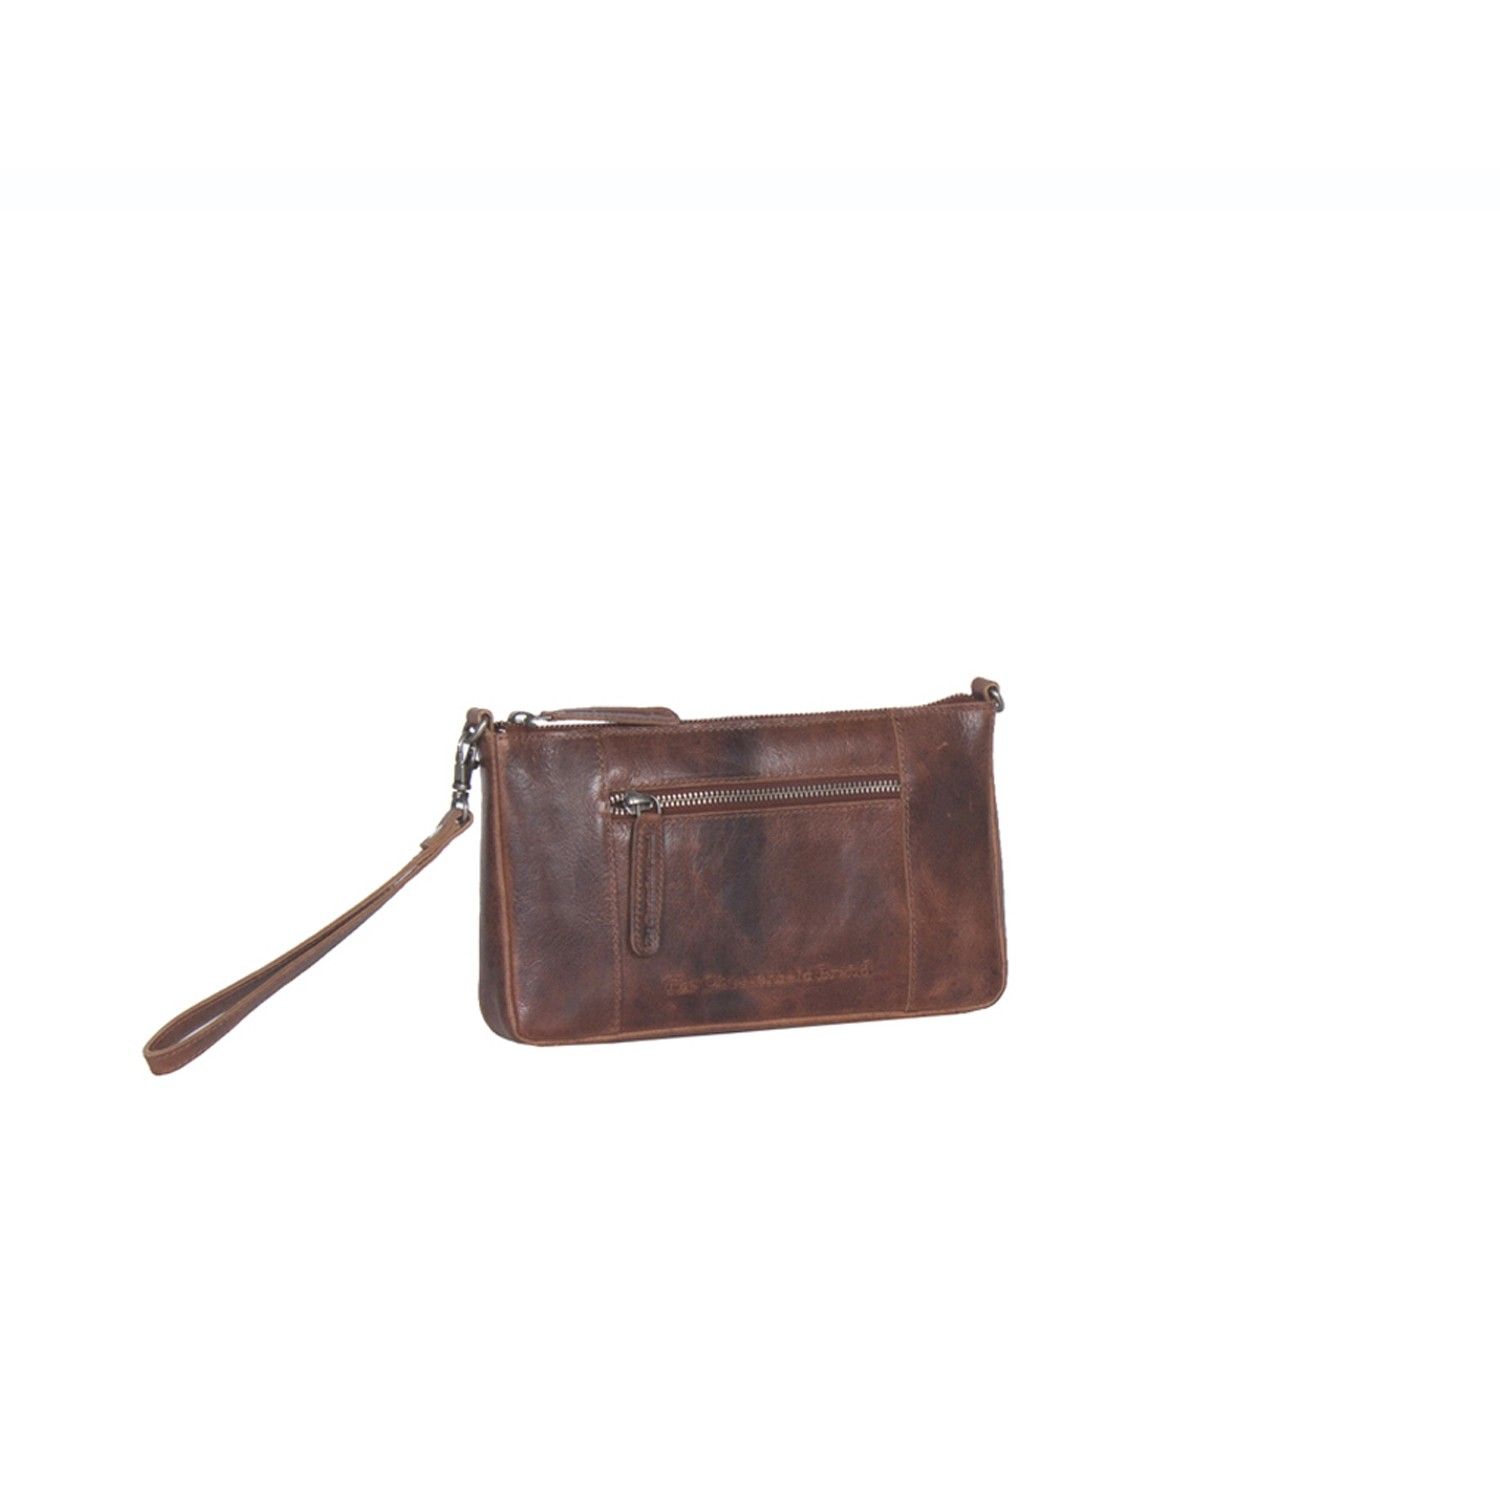 Bilde av Chesterfield Leather Clutch Medium Cognac Verena